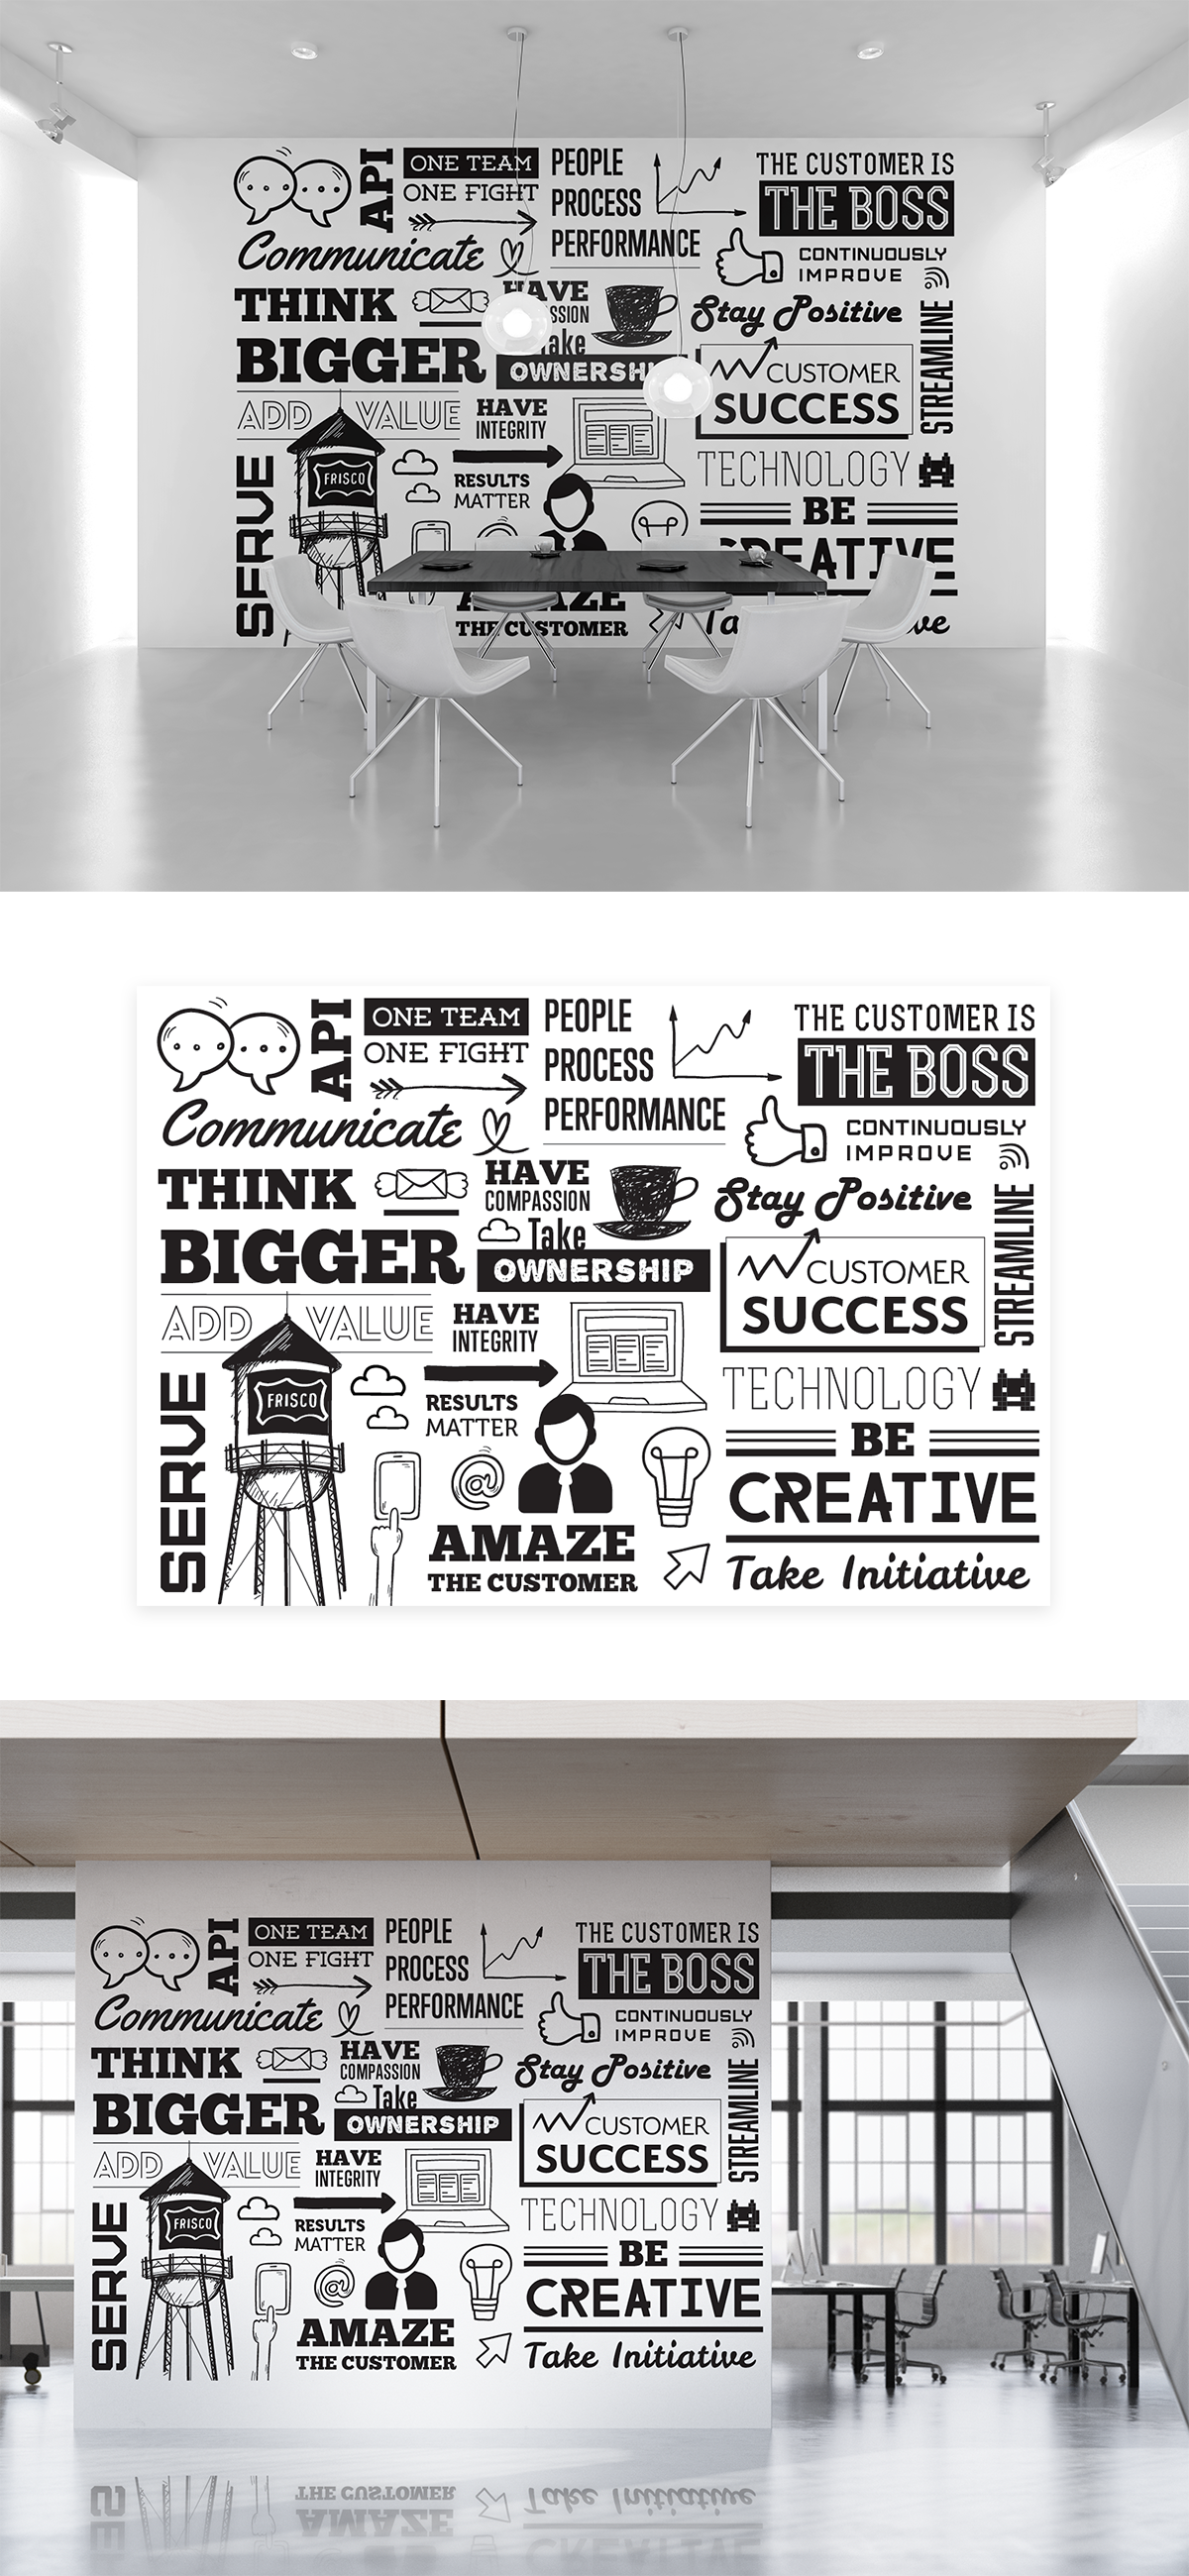 Fun collection of black & white doodle style images, blown up 4 a mural in our new loft style office